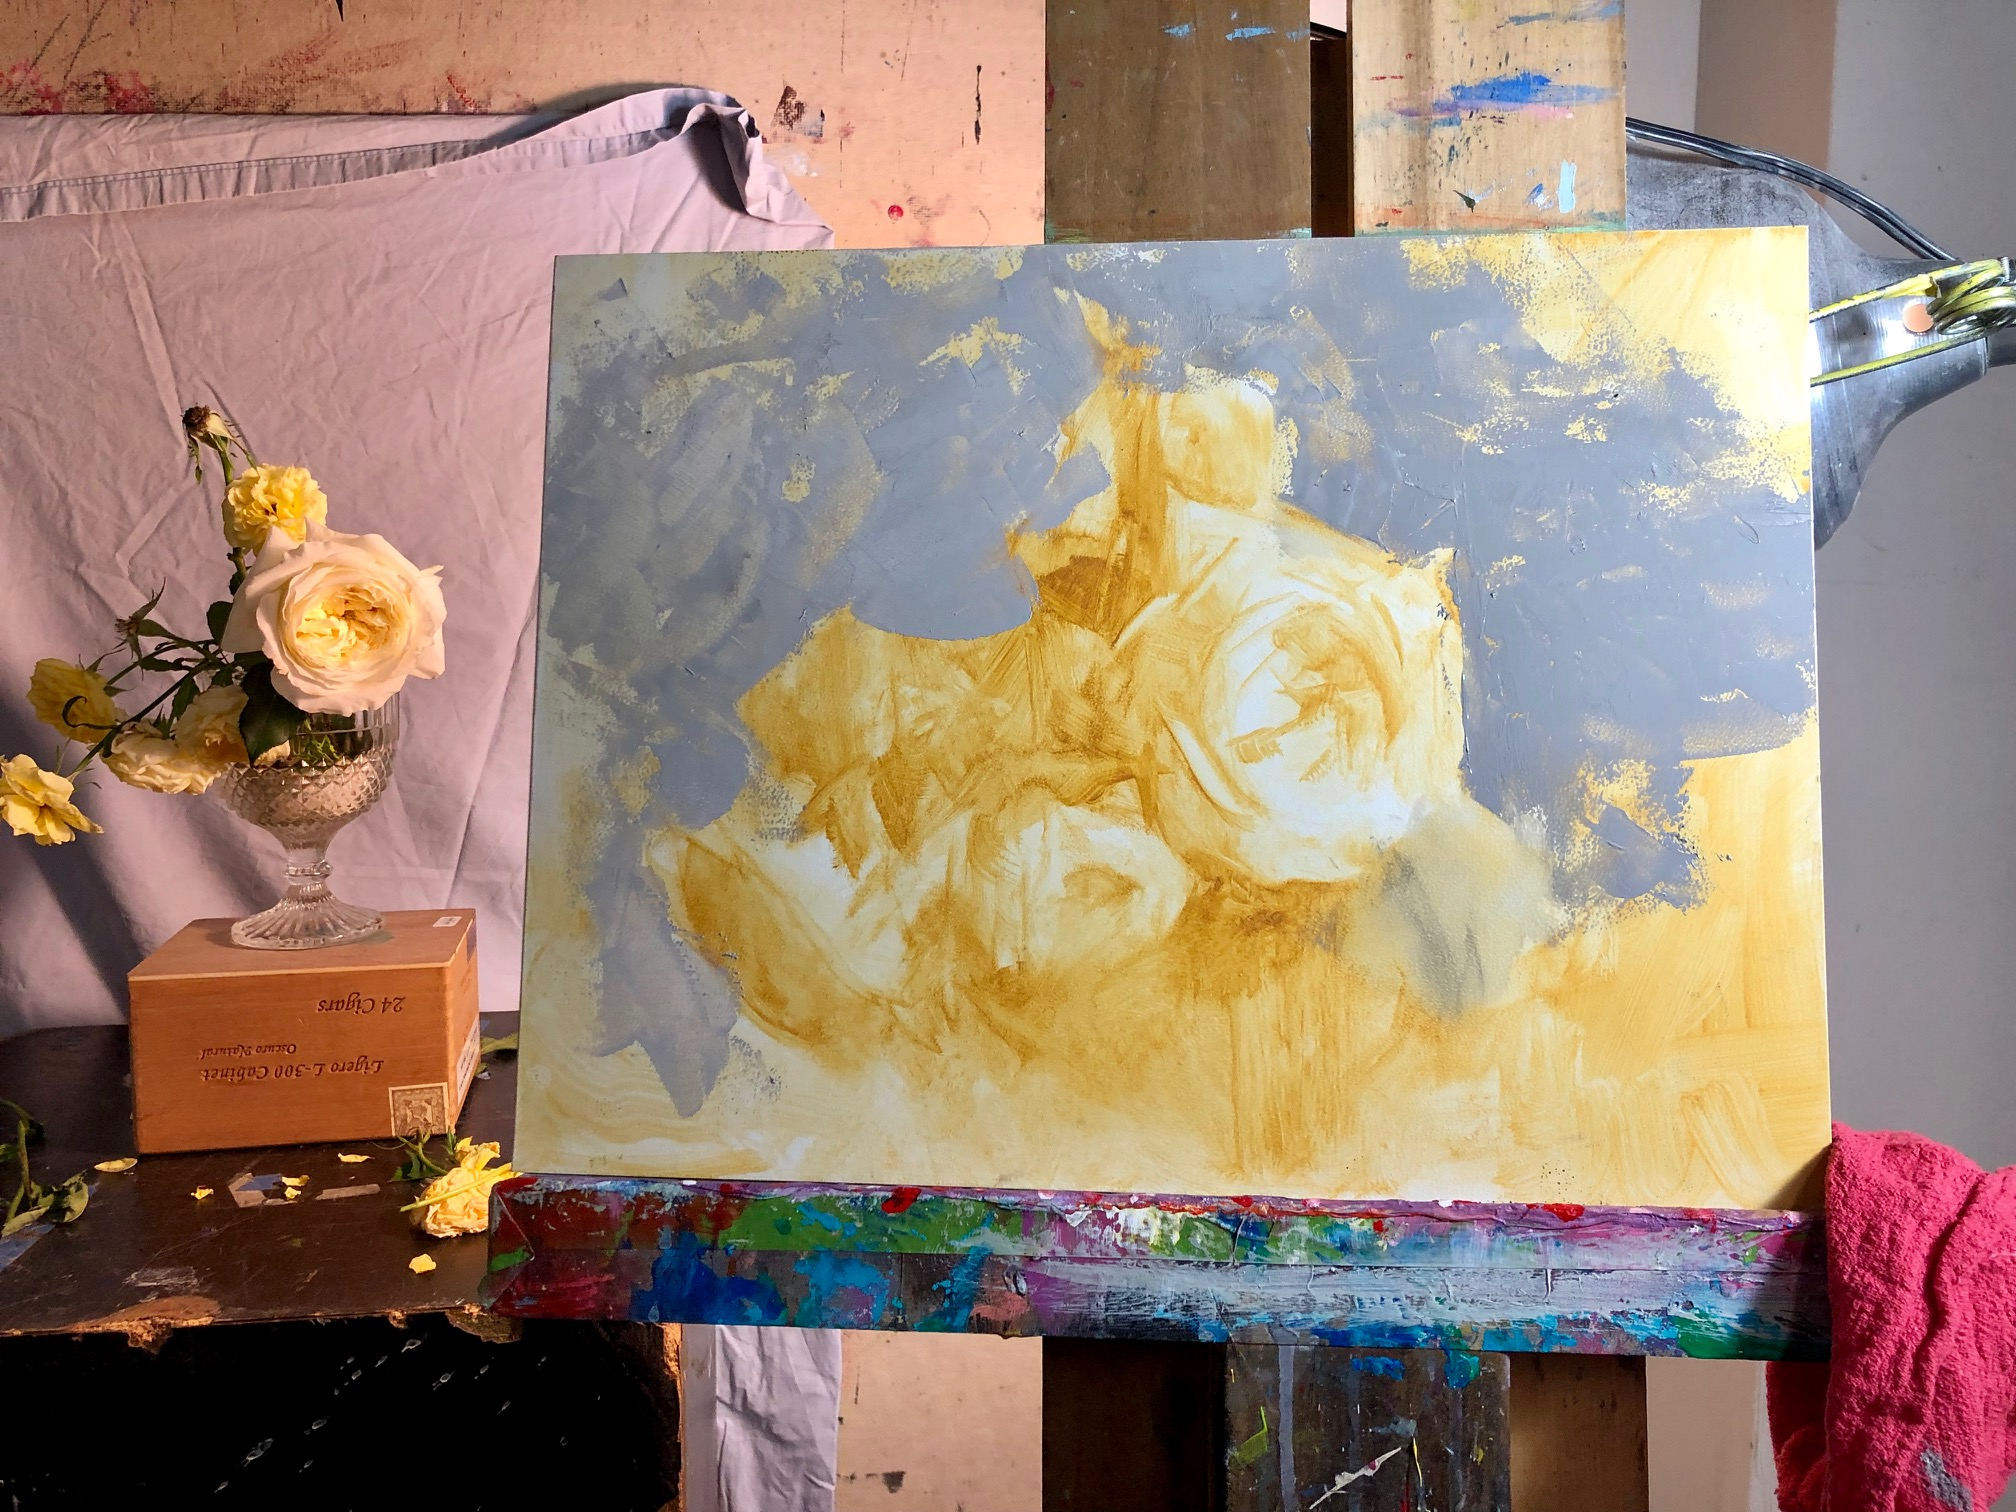 Underpainting with background lay in.